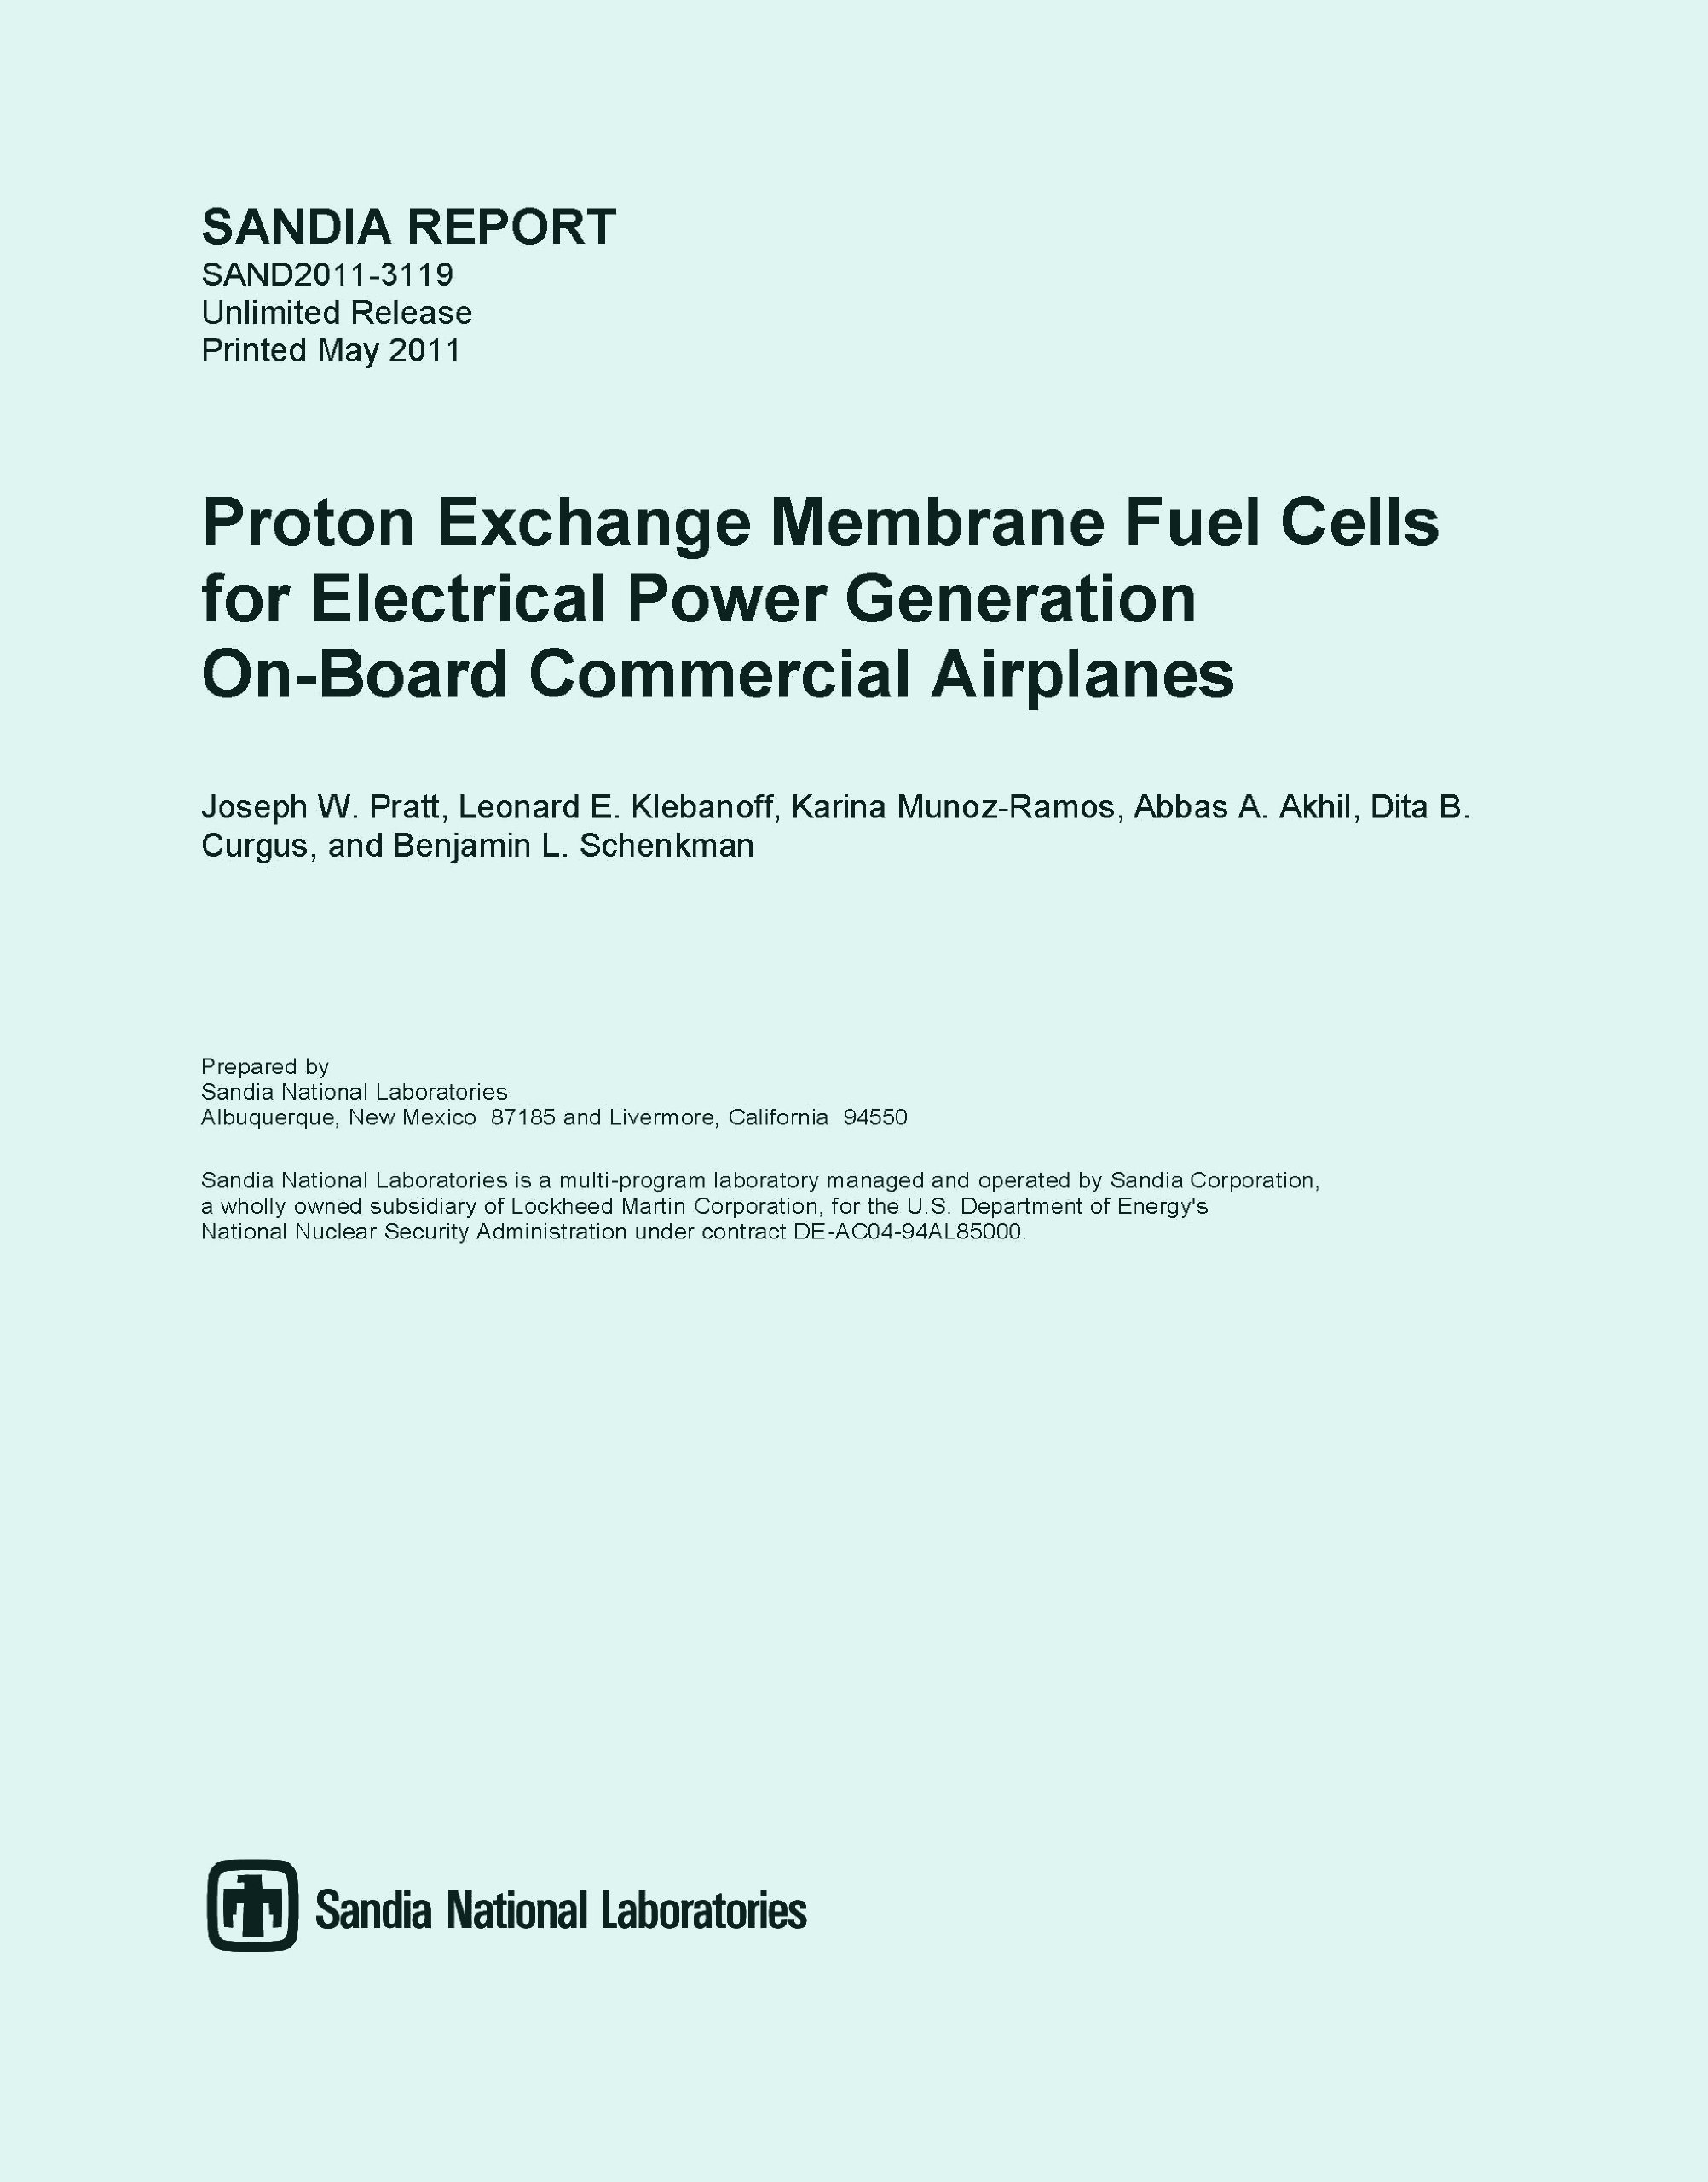 Download Proton Exchange Membrane Fuel Cells for Electrical Power Generation On-Board Commercial Airplanes (SANDIA REPORT SAND2011-3119 Printed May 2011) pdf